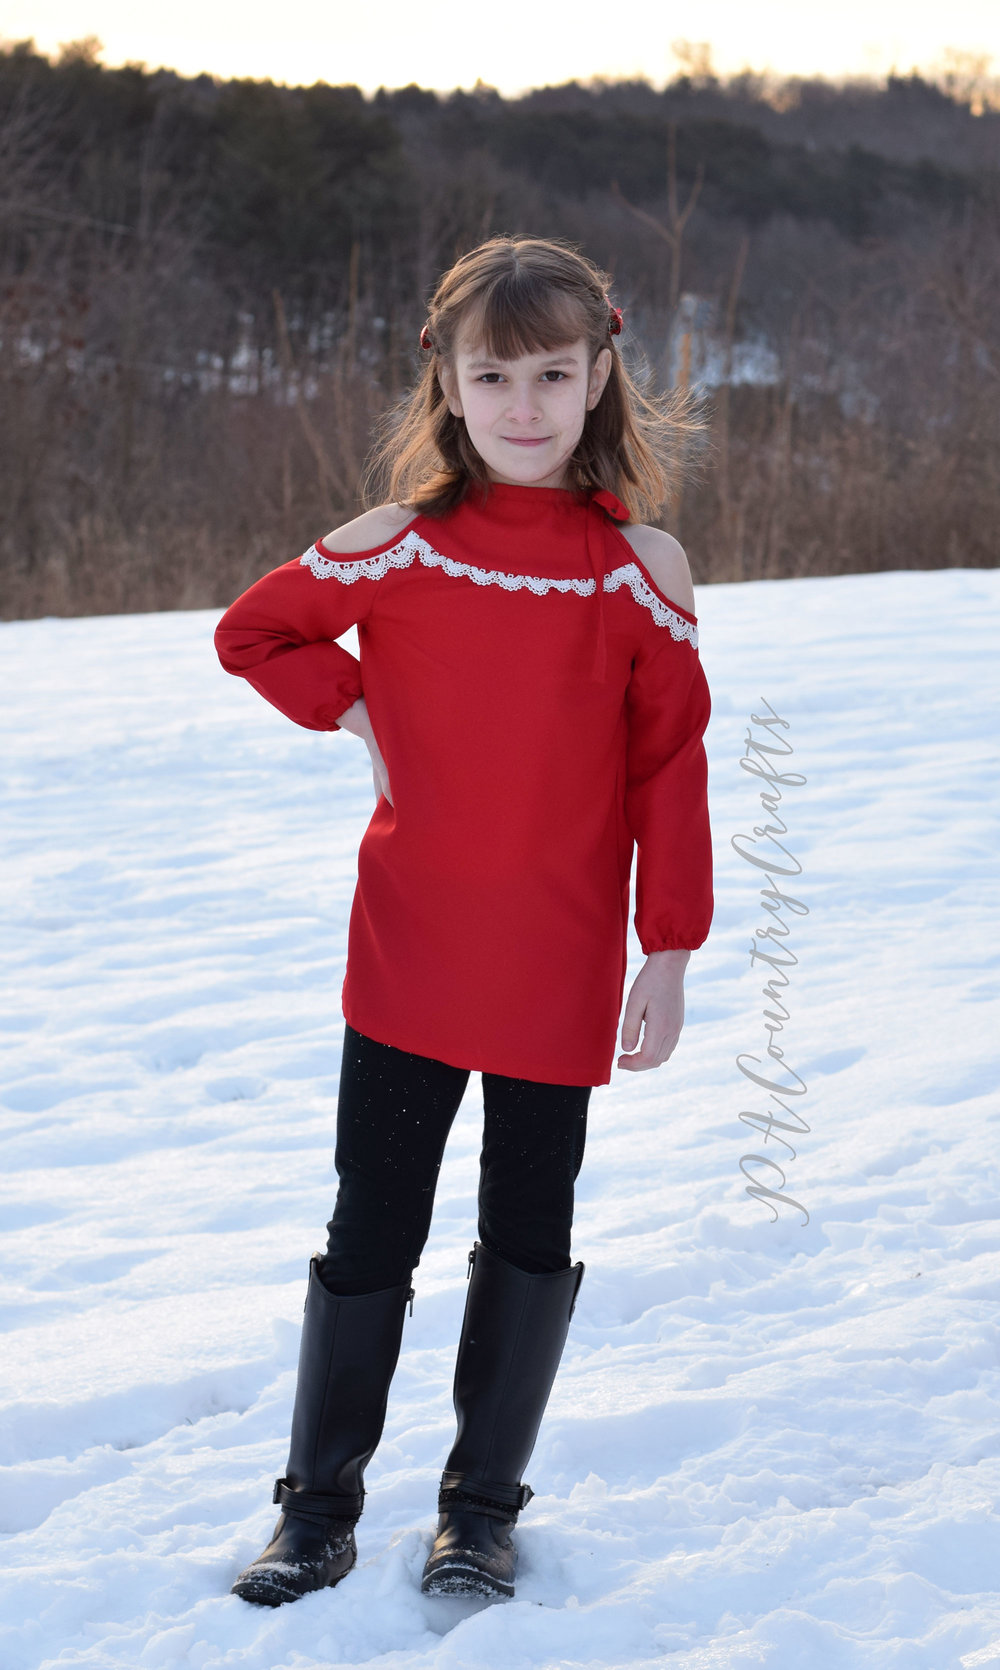 Sofiona Designs Lynx Tunic in red crepe satin with crochet lace trim